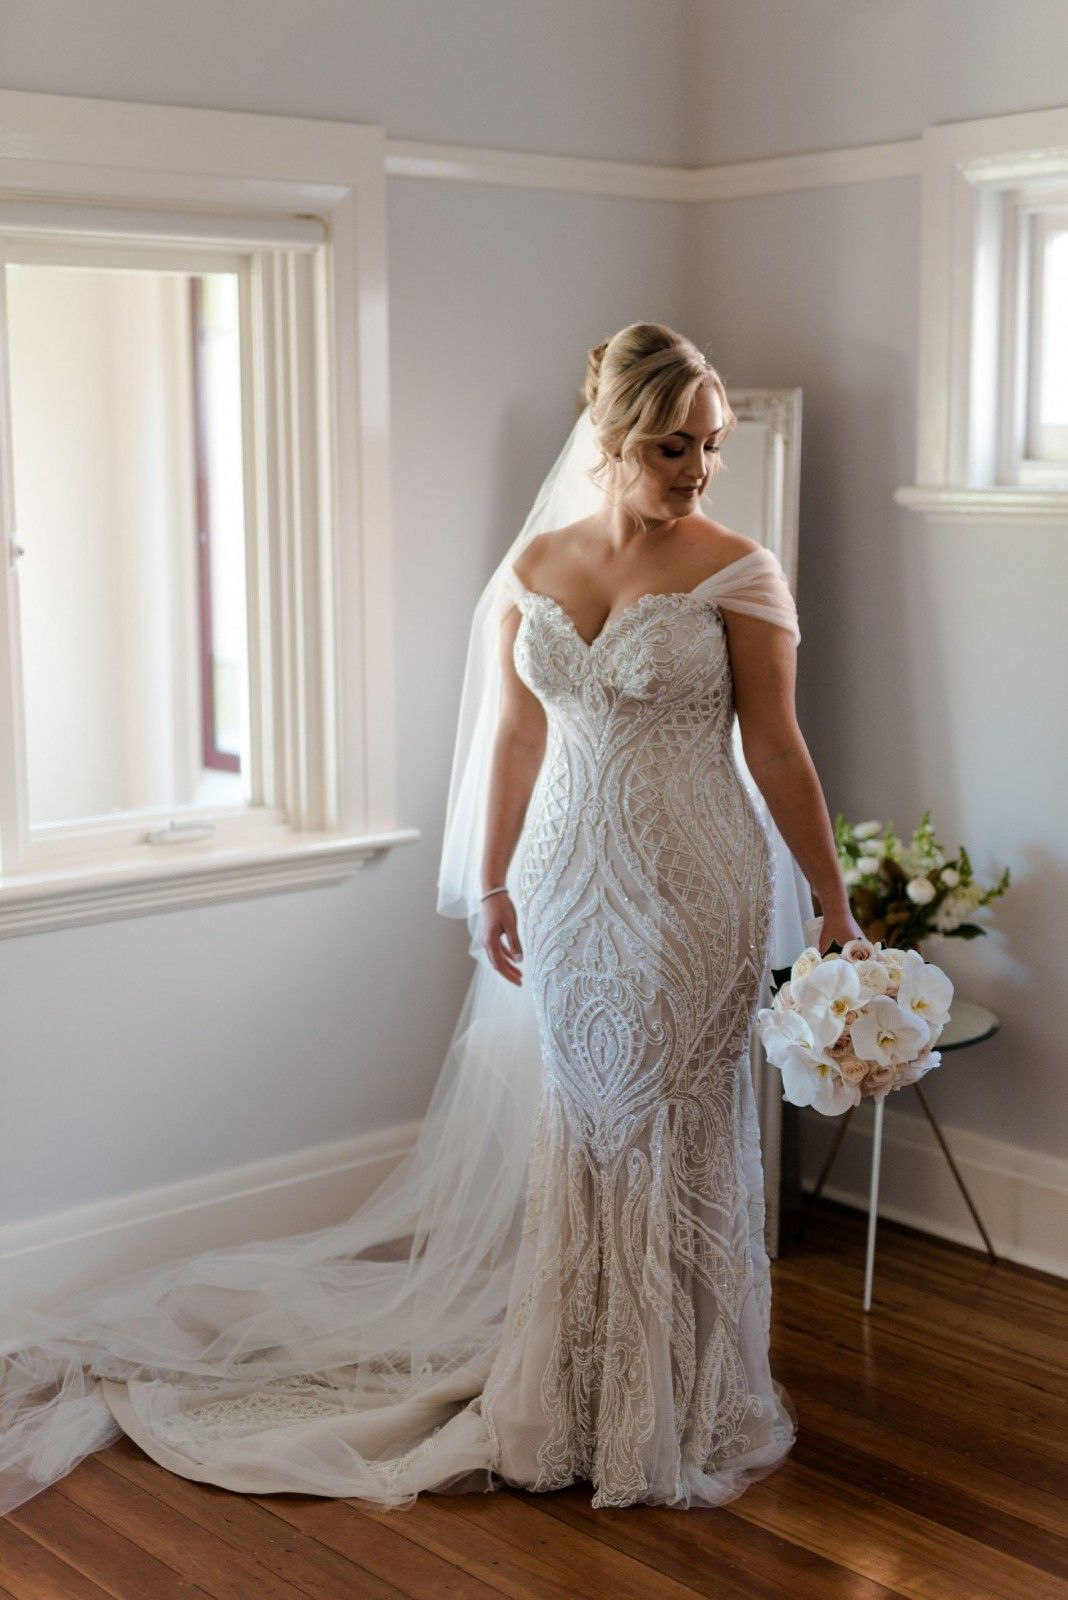 Norma And Lili Bridal Couture Wedding Dress Wedding Dress Couture Plus Wedding Dresses Plus Size Wedding Gowns [ 1600 x 1068 Pixel ]